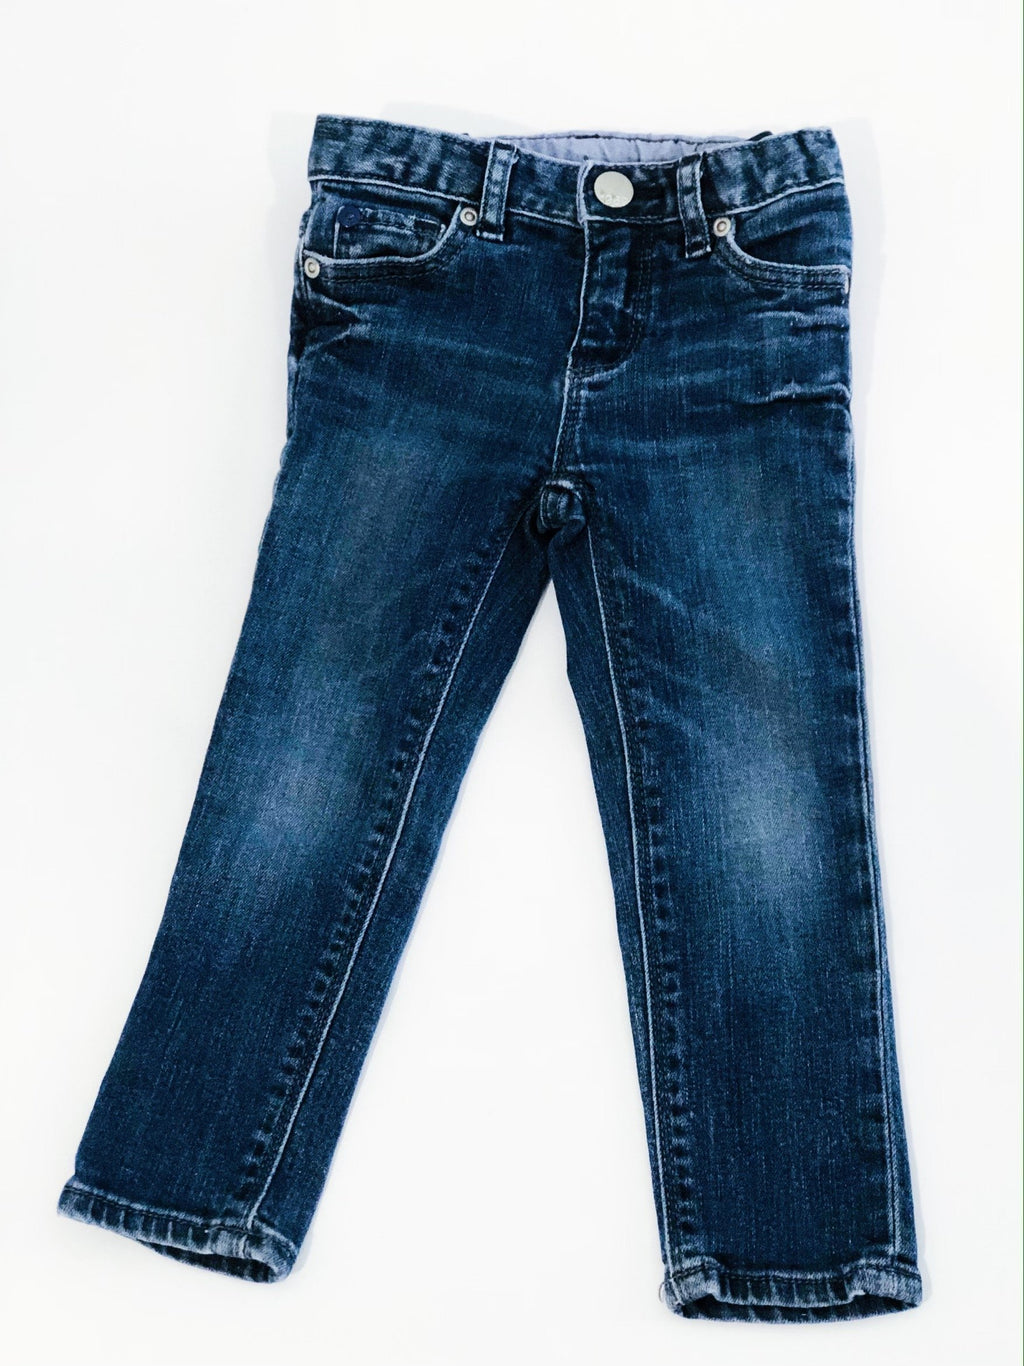 Gap jeans skinny size 2-Fresh Kids Inc.